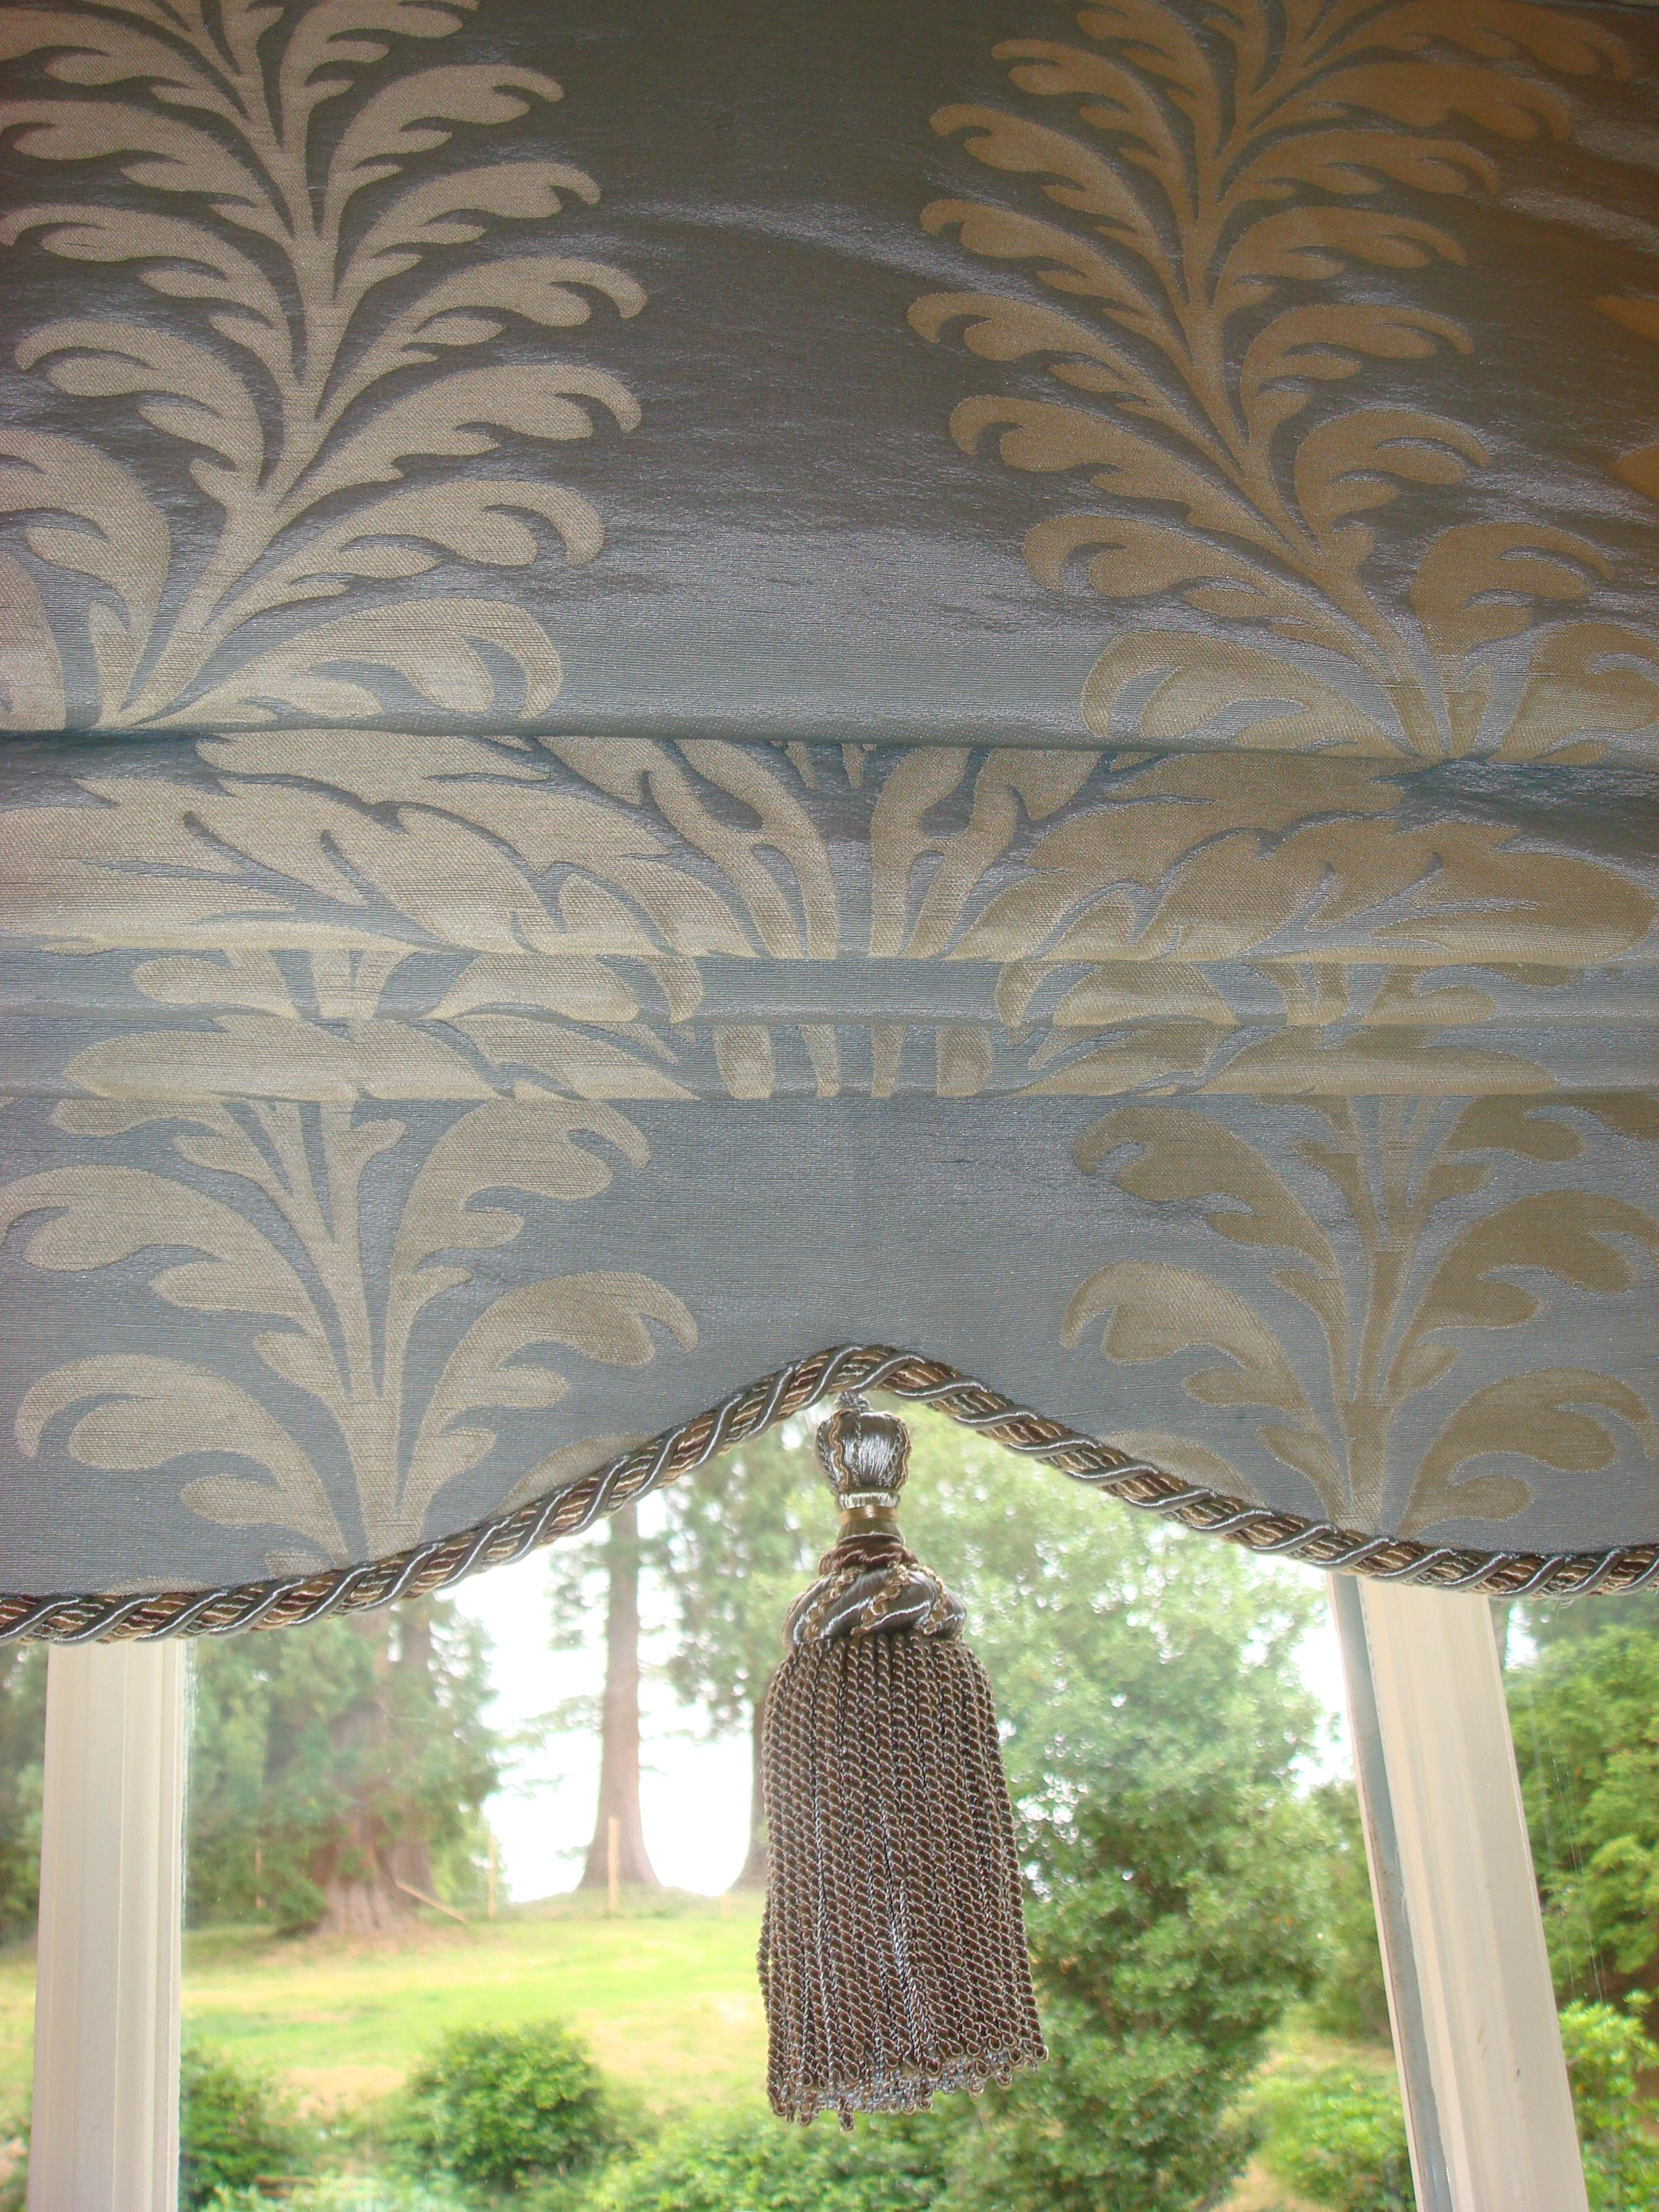 Window dressing ideas for arched windows  roman blind with shaped trimmed hem  window treatments  pinterest